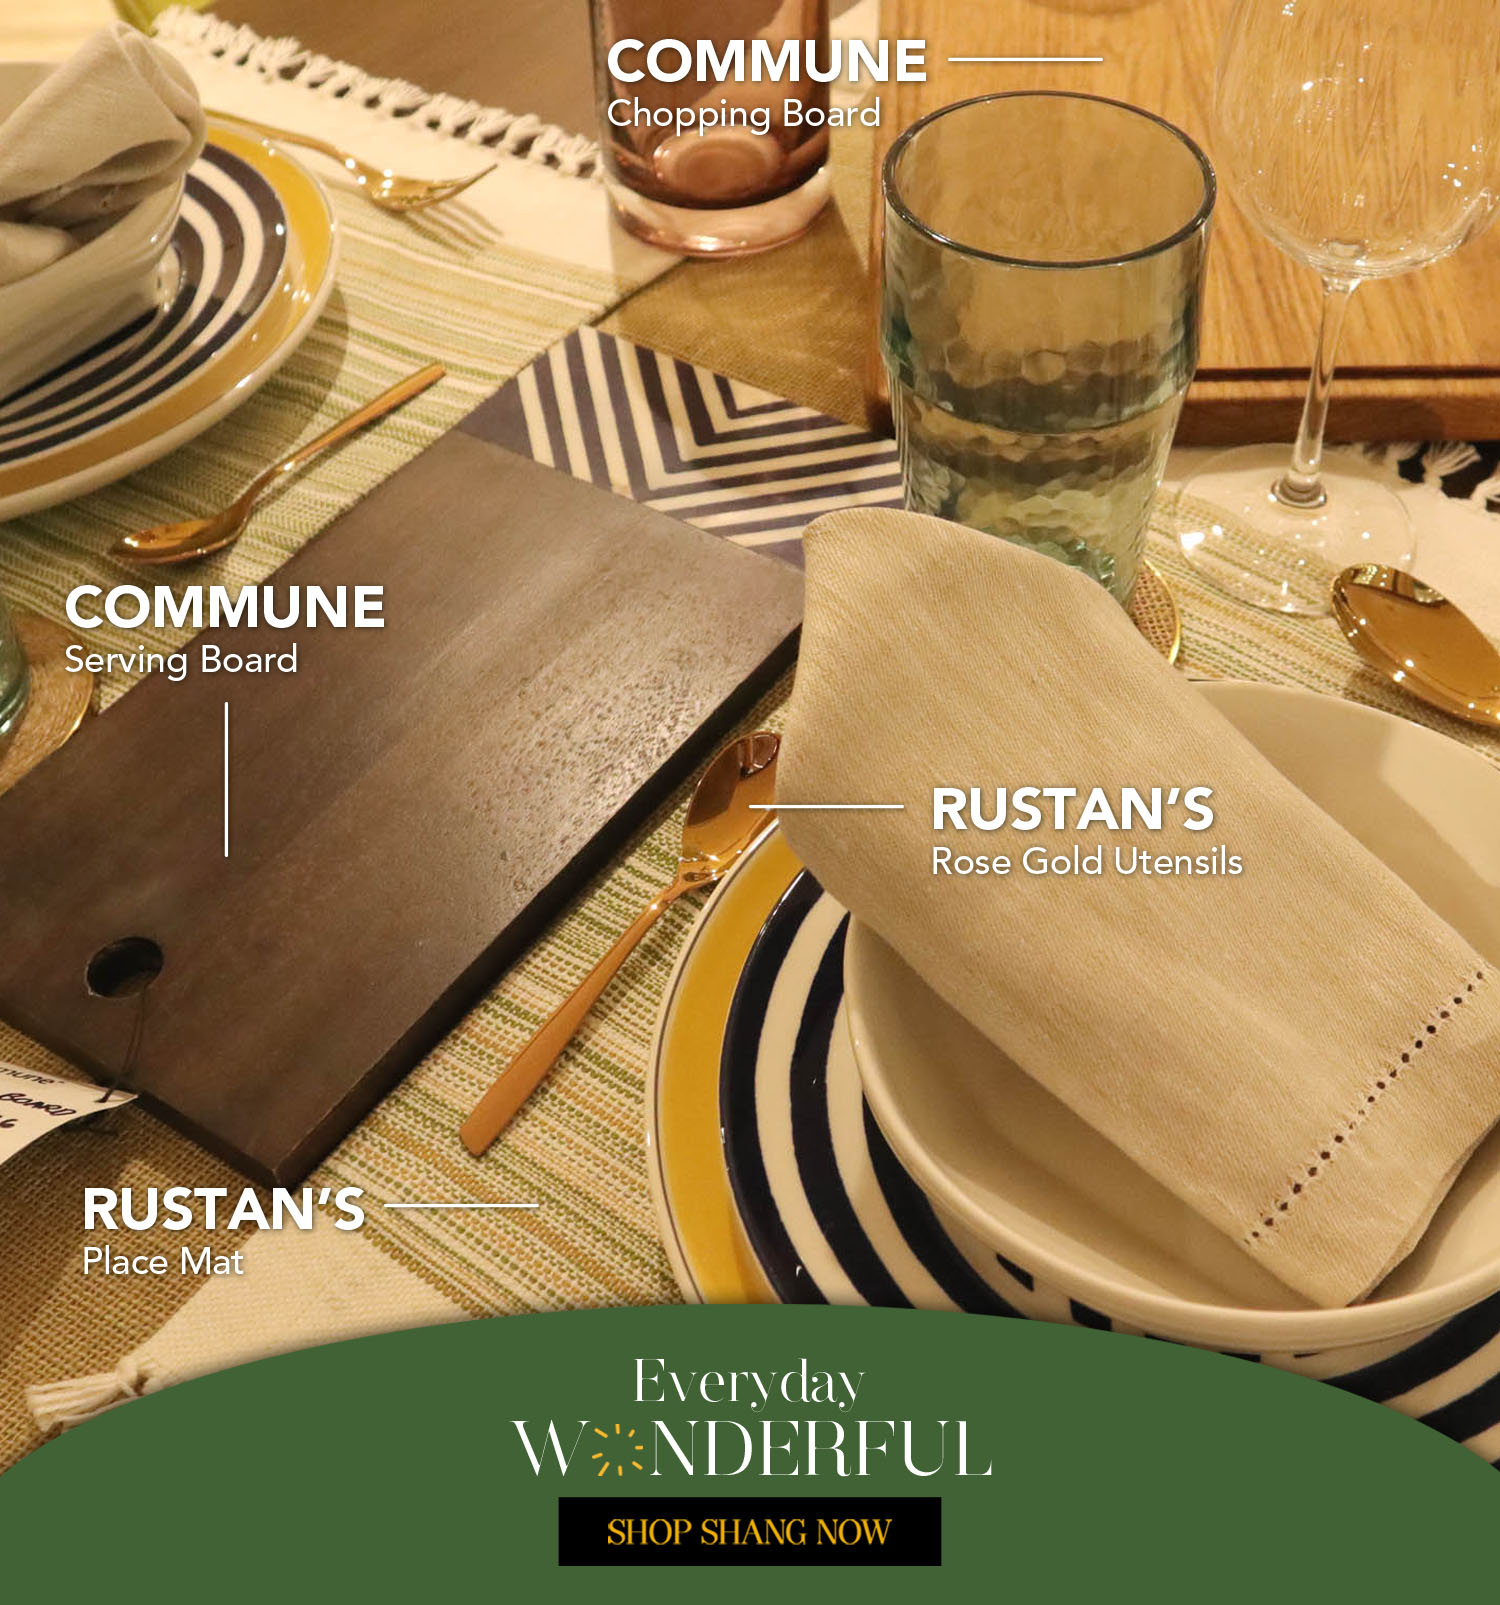 Wooden Chopping Board and Wooden Serving Board from Commune_Rose Gold Utensils and Place Mat from Rustan's